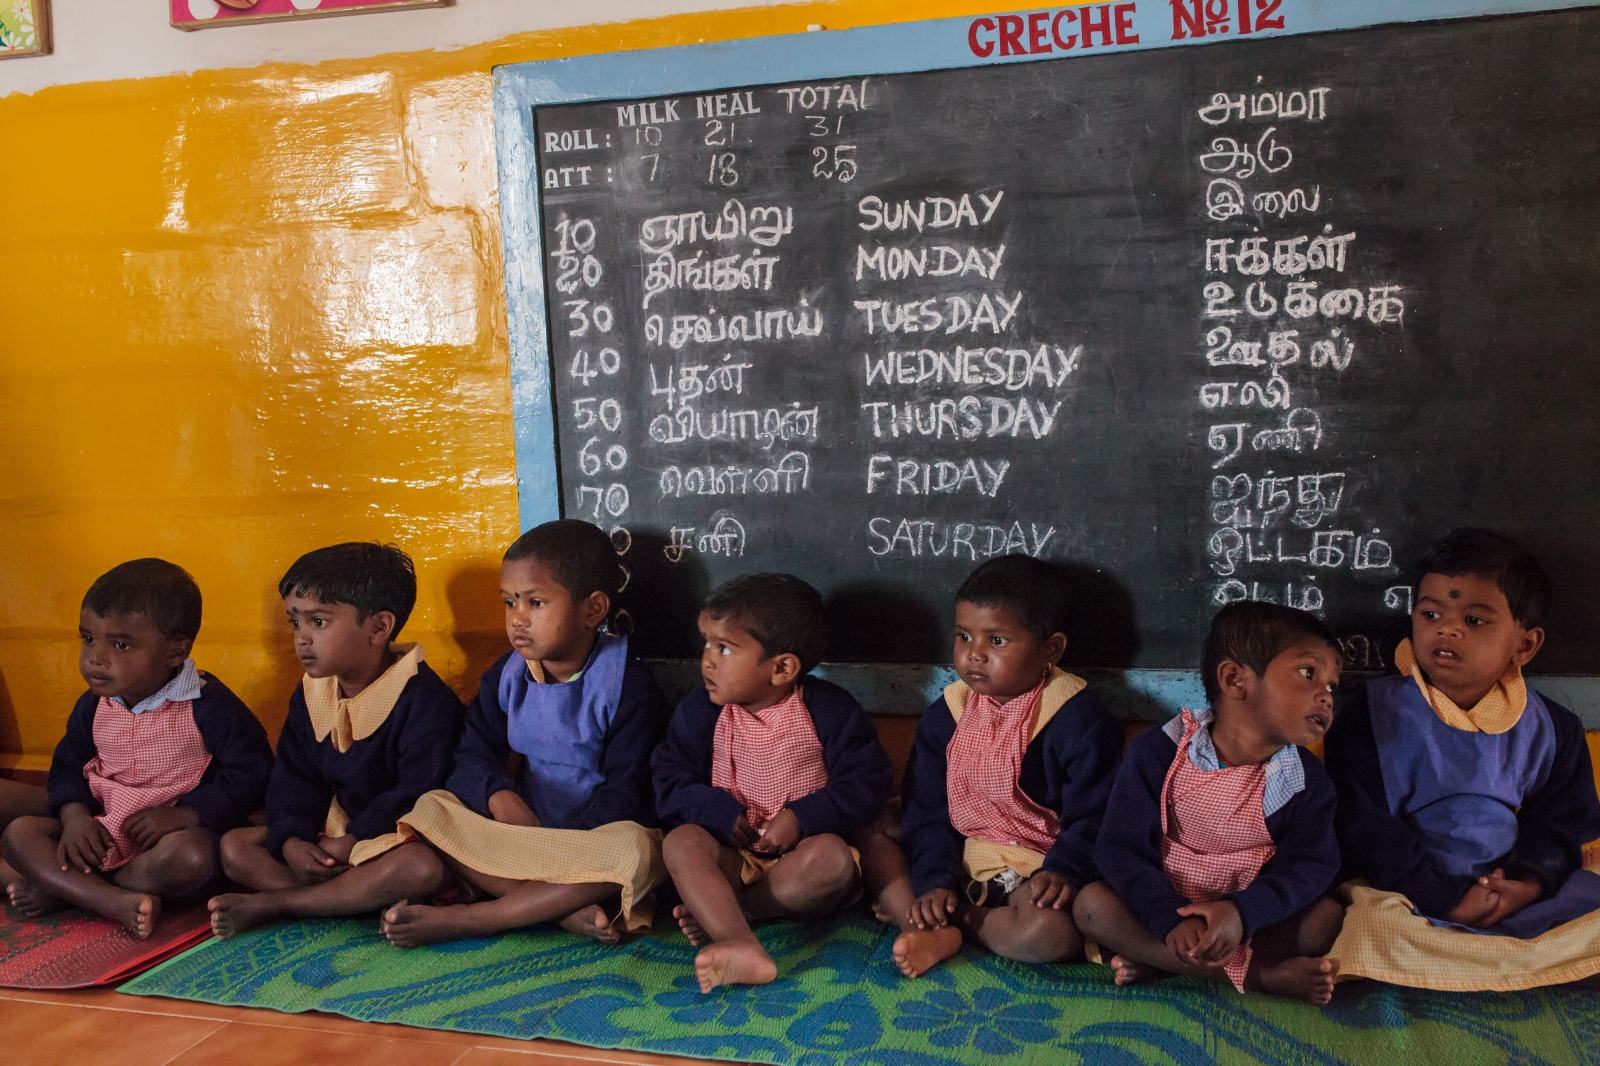 Children prepare for lunch at the nursery located on the Craigmore tea plantations in the Nilgiri Hills. All children of tea plantation workers, mostly from the Northeastern state of Jhaharkhand, are provided day care while their parents work the tea fields from 8 am to 6 pm.